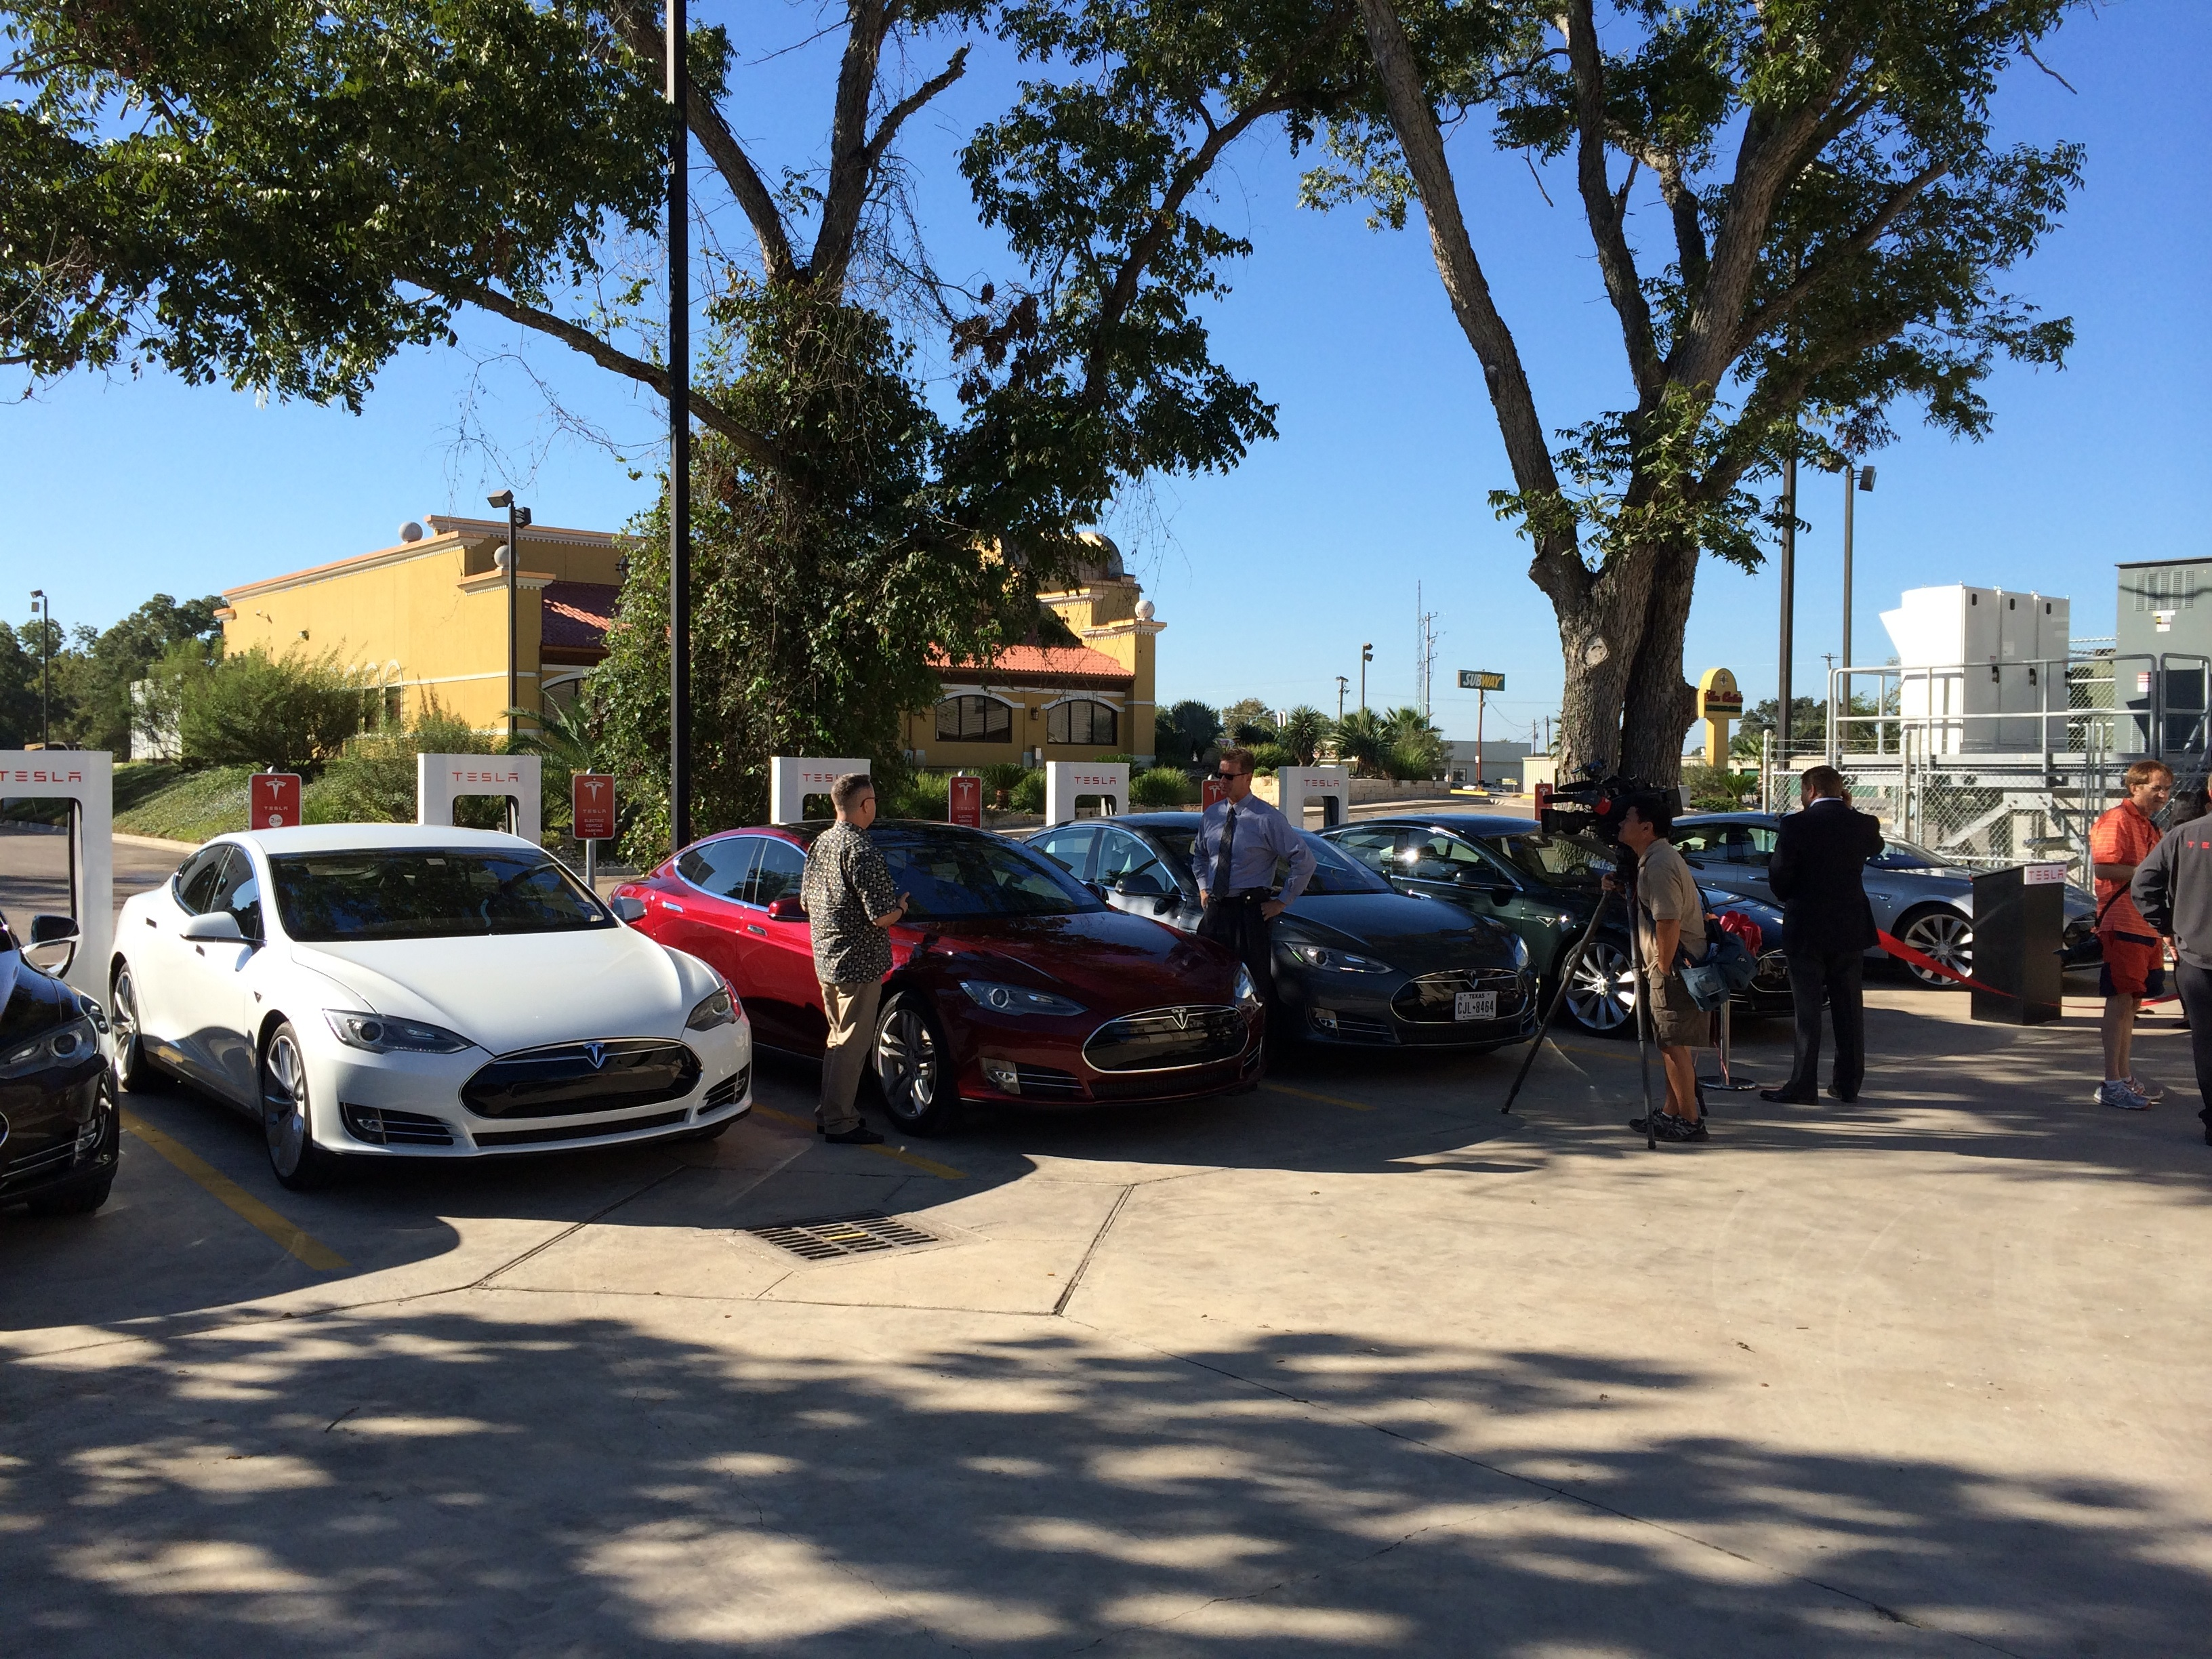 The Columbus Supercharger opening was attended by dozens of Houston Tesla owners—folks who are buying cars in spite of the legislative roadblocks that lobby groups are keeping propped up.